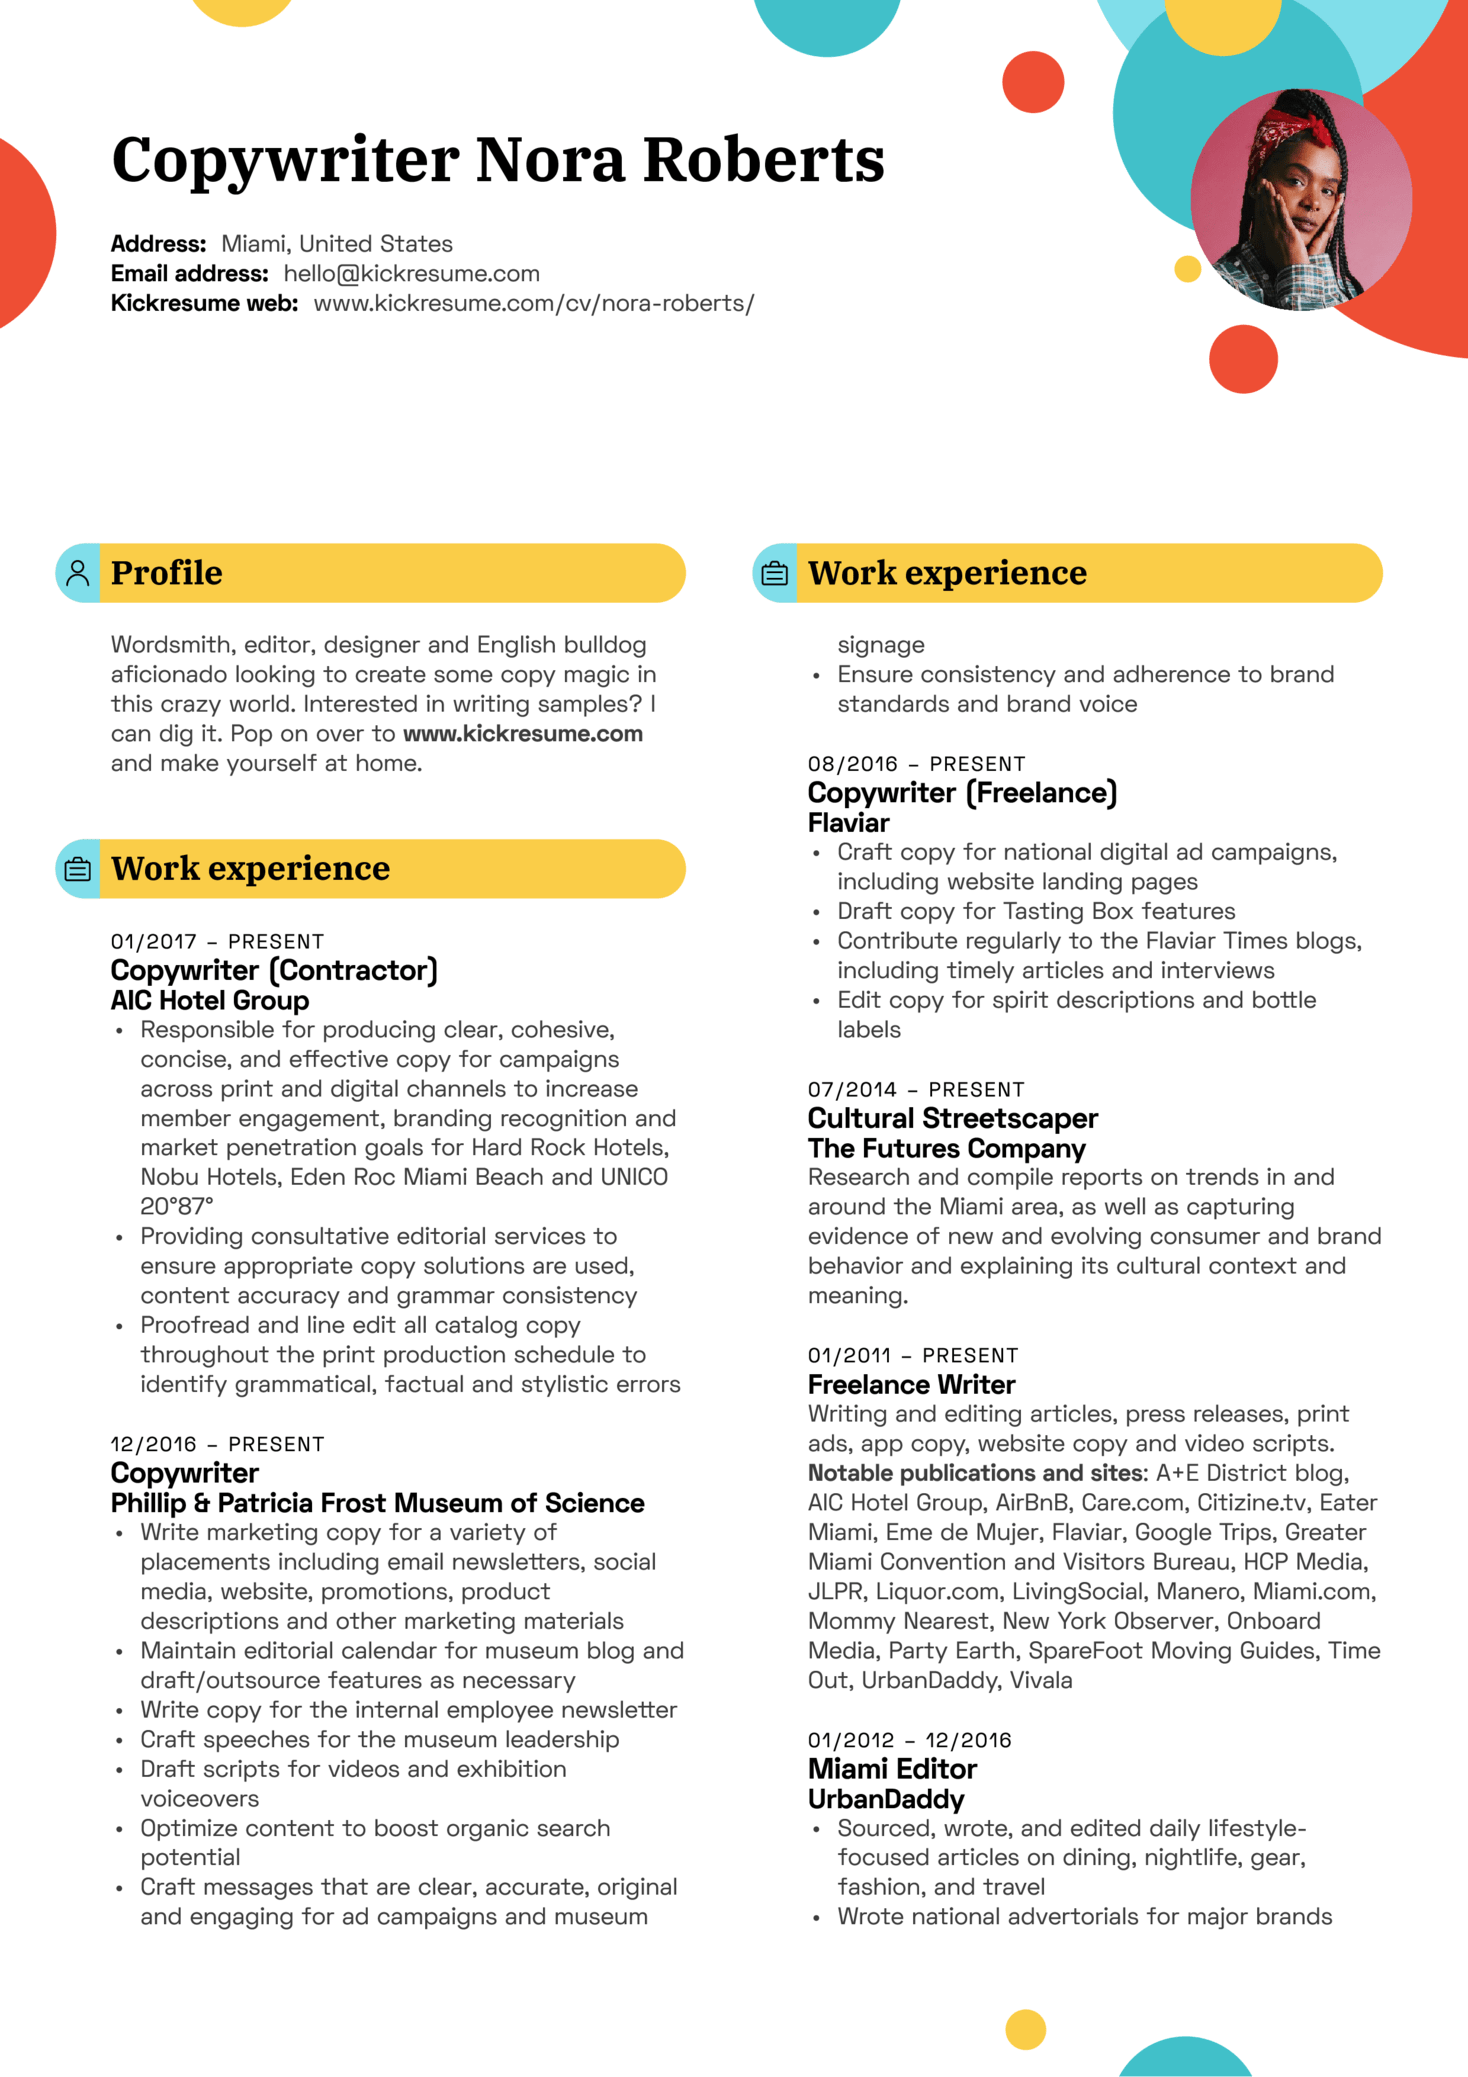 Hard Rock Hotel Copywriter Resume Template (Teil 1)